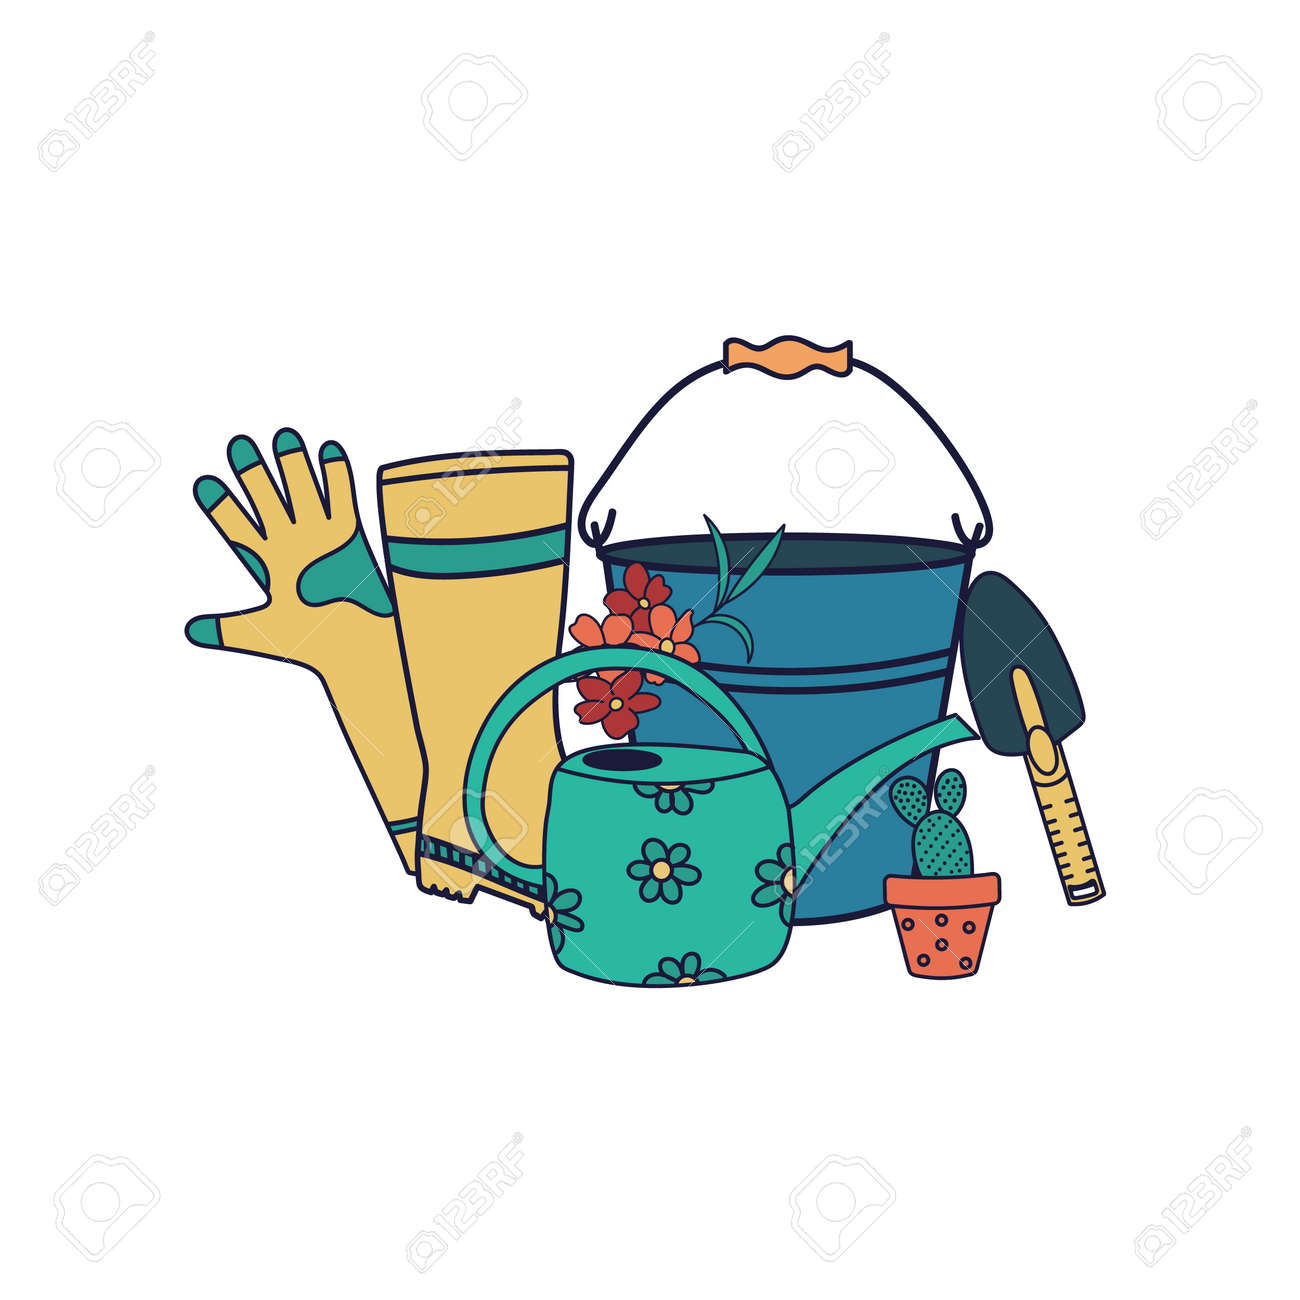 Vector set of garden tools isolated on white background. Bucket, rubber boots, gloves, watering can, shovel. Flat cartoon illustration. - 169107938